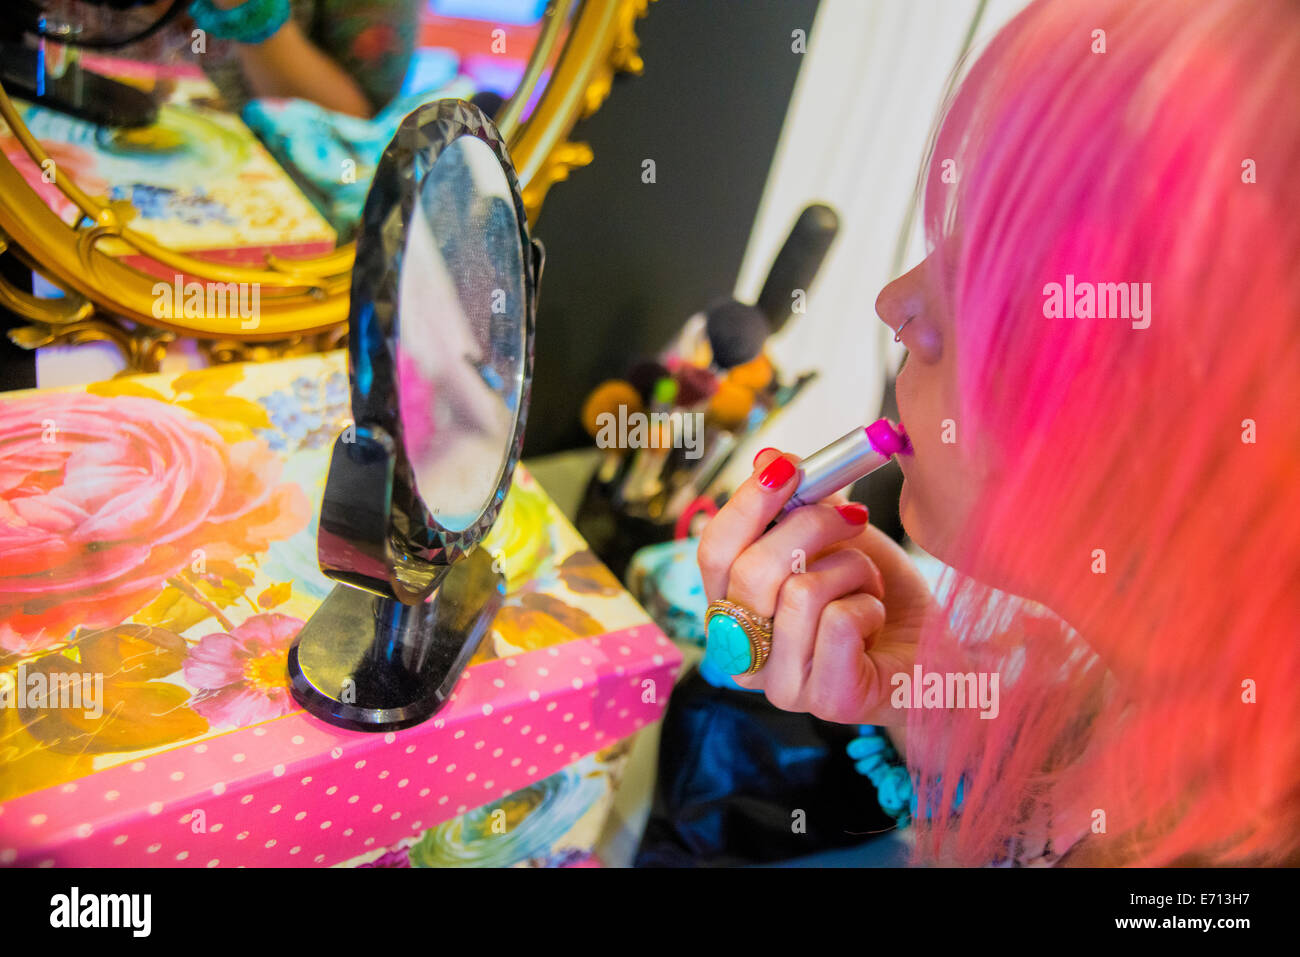 Young woman with pink hair putting on pink lipstick - Stock Image